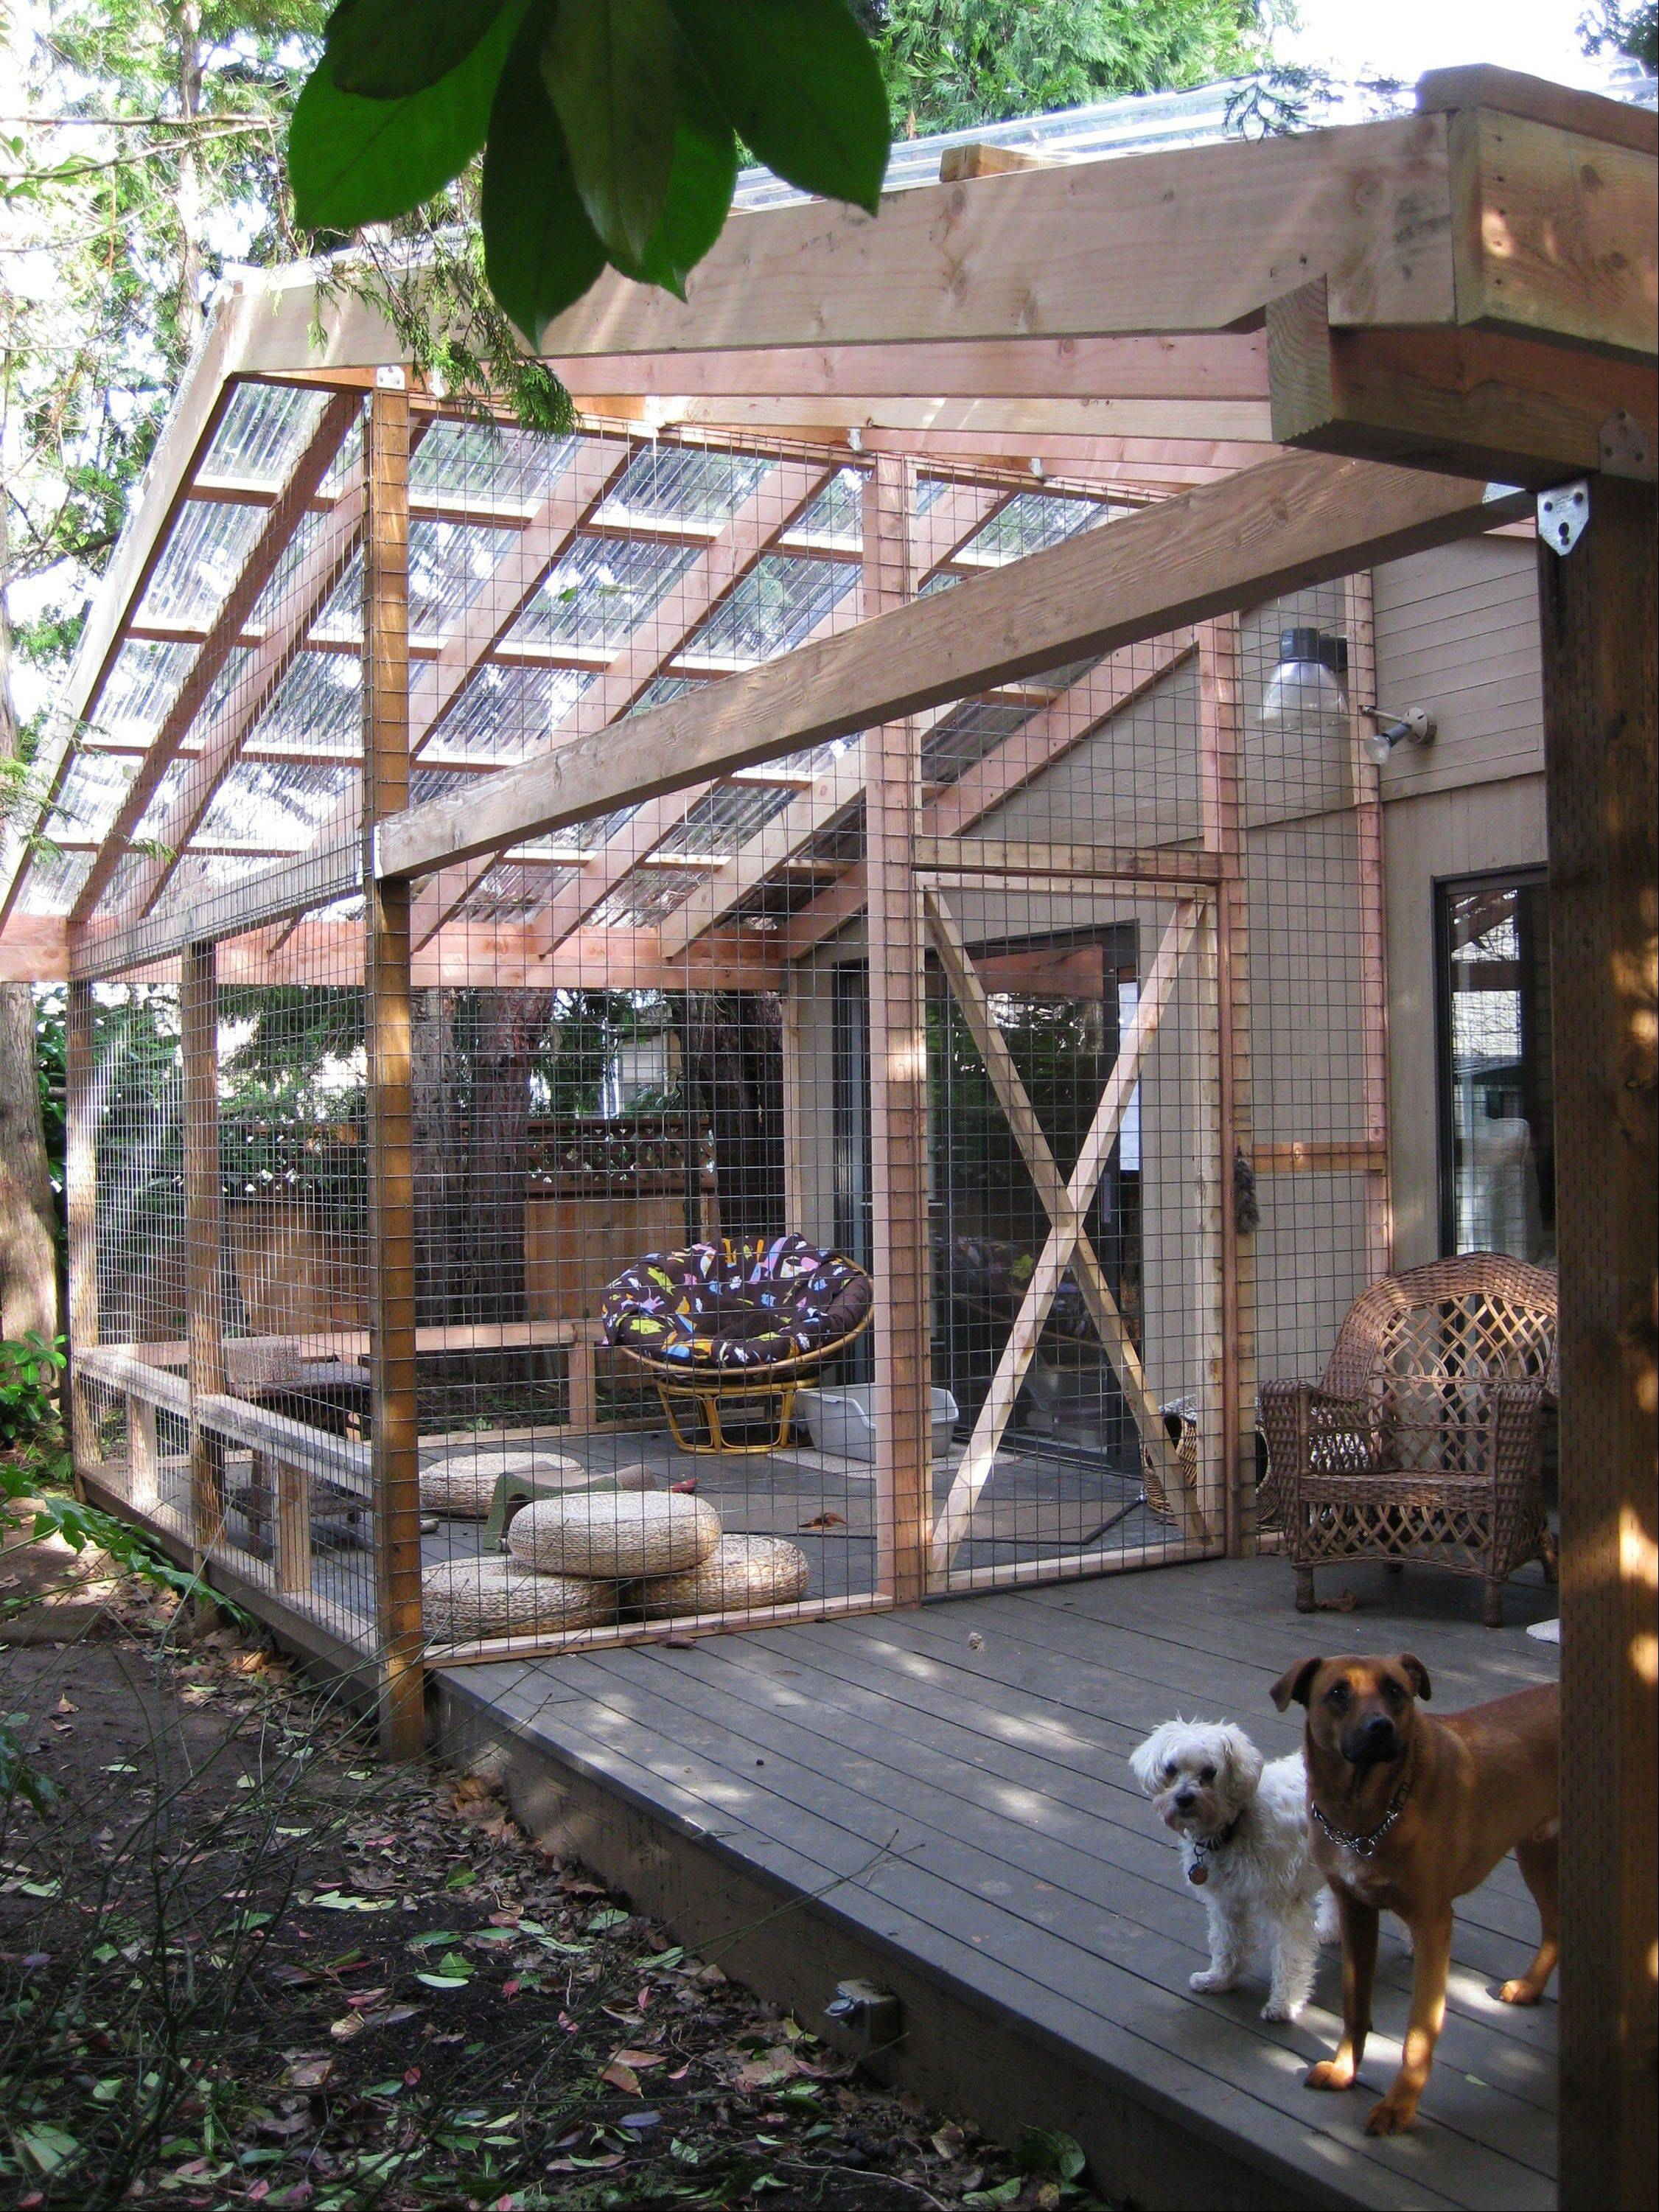 Carrie Fagerstrom�s catio allows her eight cats to enjoy the outdoors, but not the harmful elements that come along with it, in Portland, Ore. The playground for the cats has an 11 foot by 14 foot base and is 11 feet high, with mesh wiring on the sides and a clear roof. The room includes scratching posts, a small water fountain and plenty of toys to entertain them.